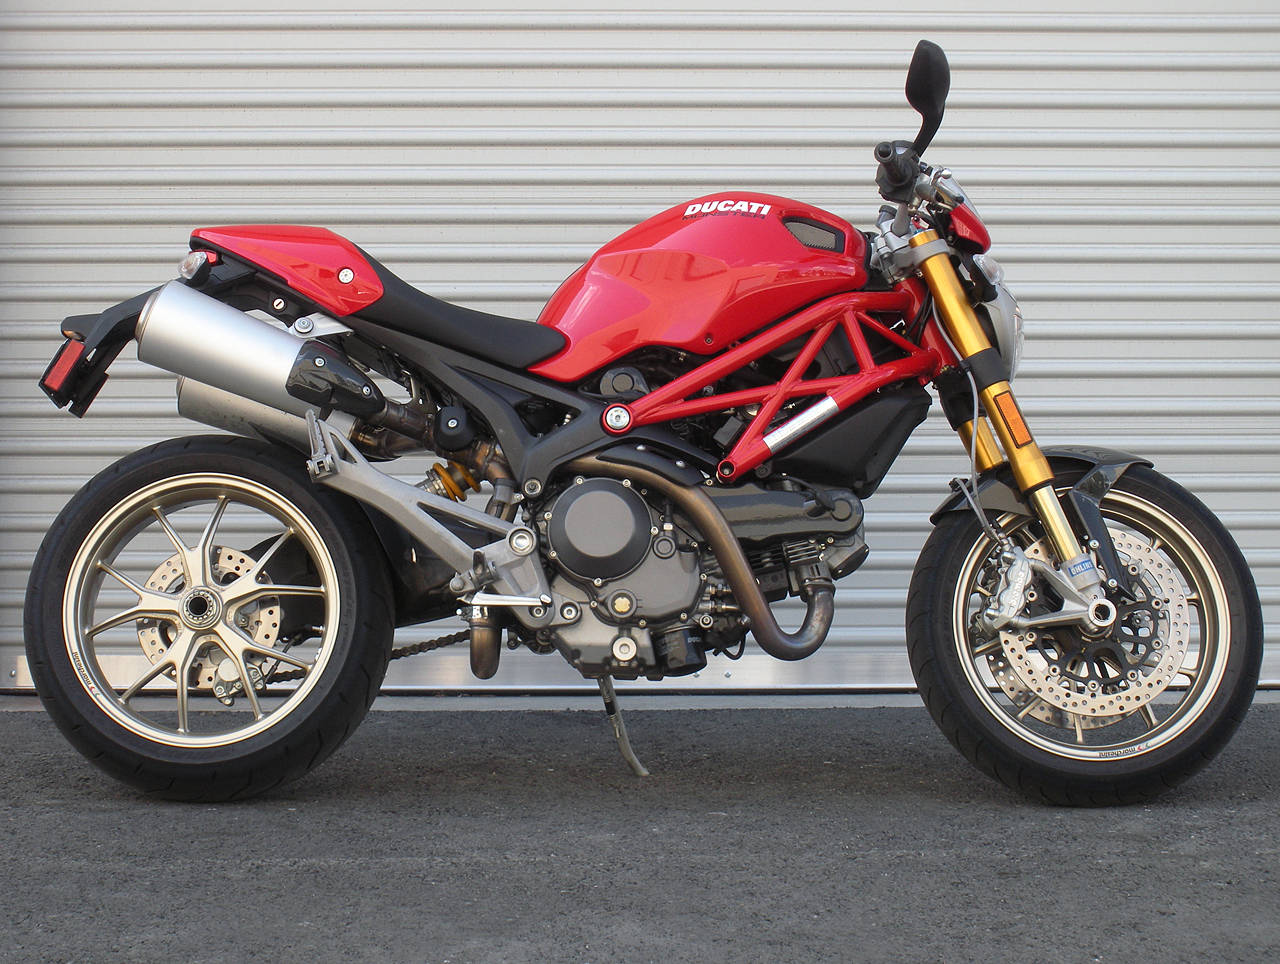 Ducati Monster 1100 S 2010 images #79340